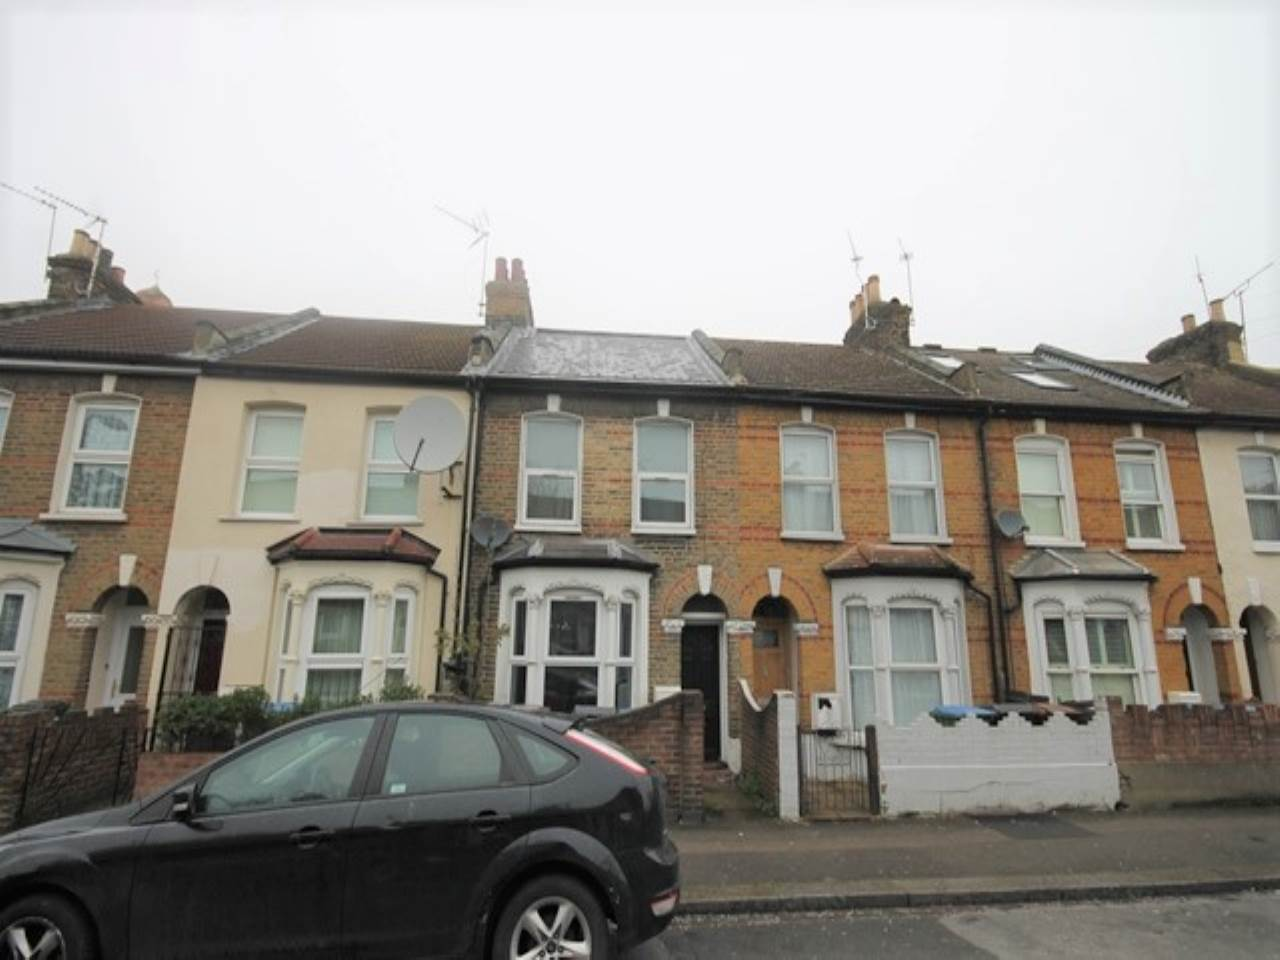 4 bed house to rent in Stratford, E15